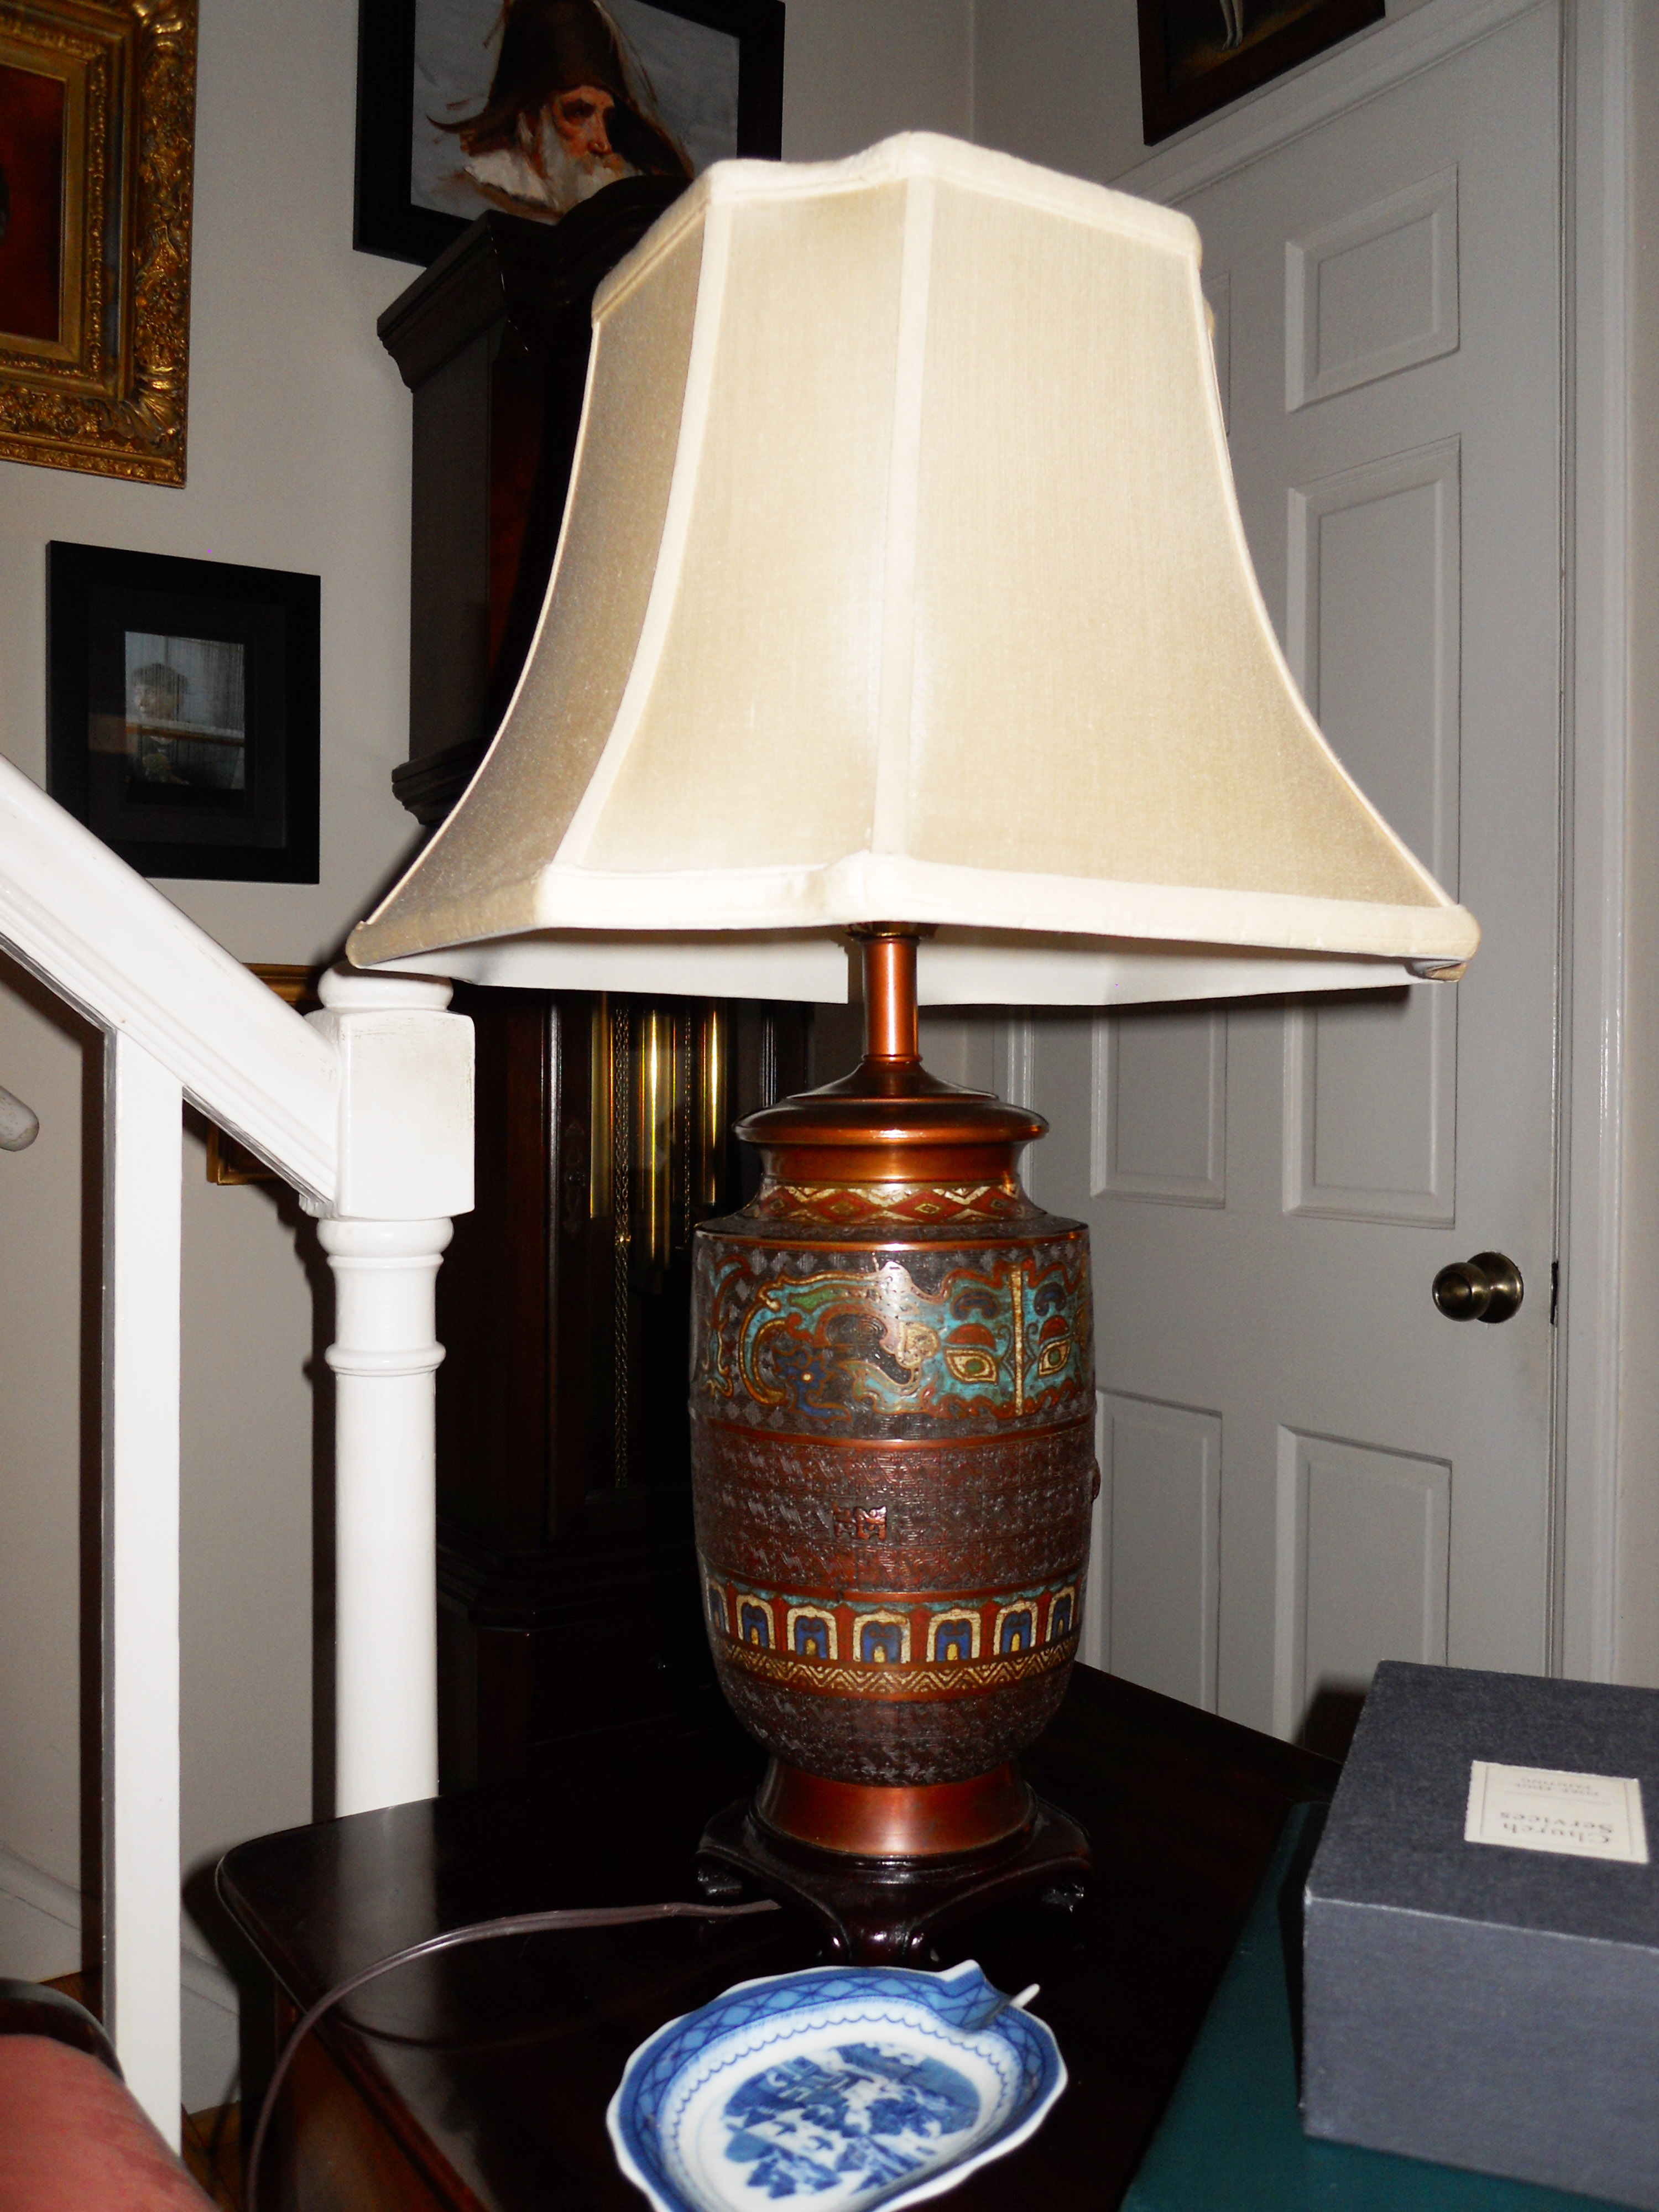 Our New Lamp from Artisan Lamp Company - Photo by Ron Patterson